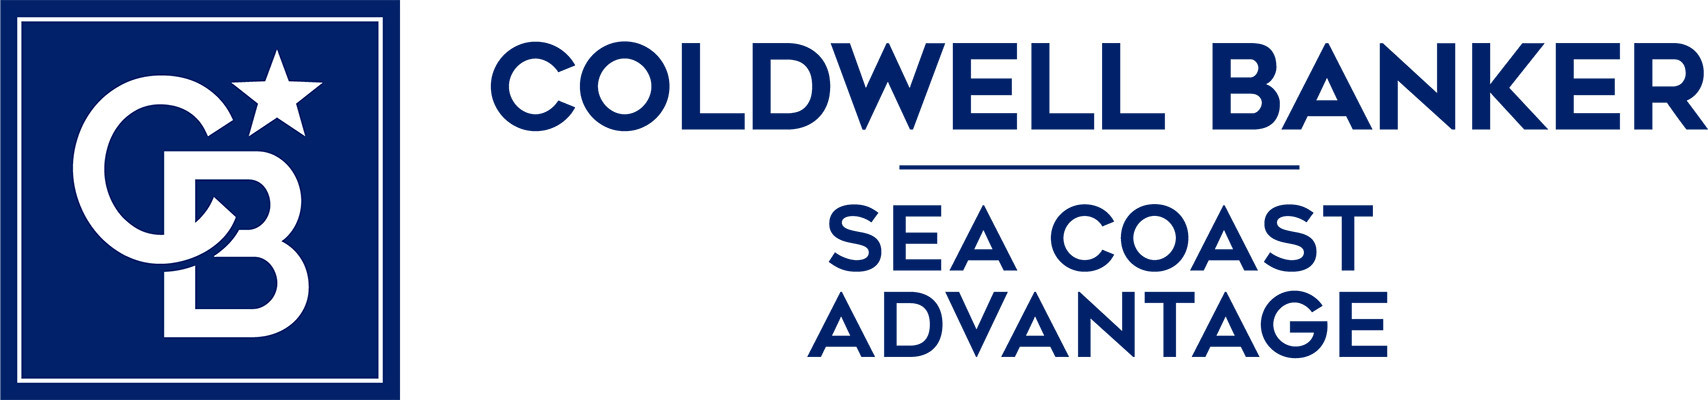 Coldwell Banker Willis-Smith Logo